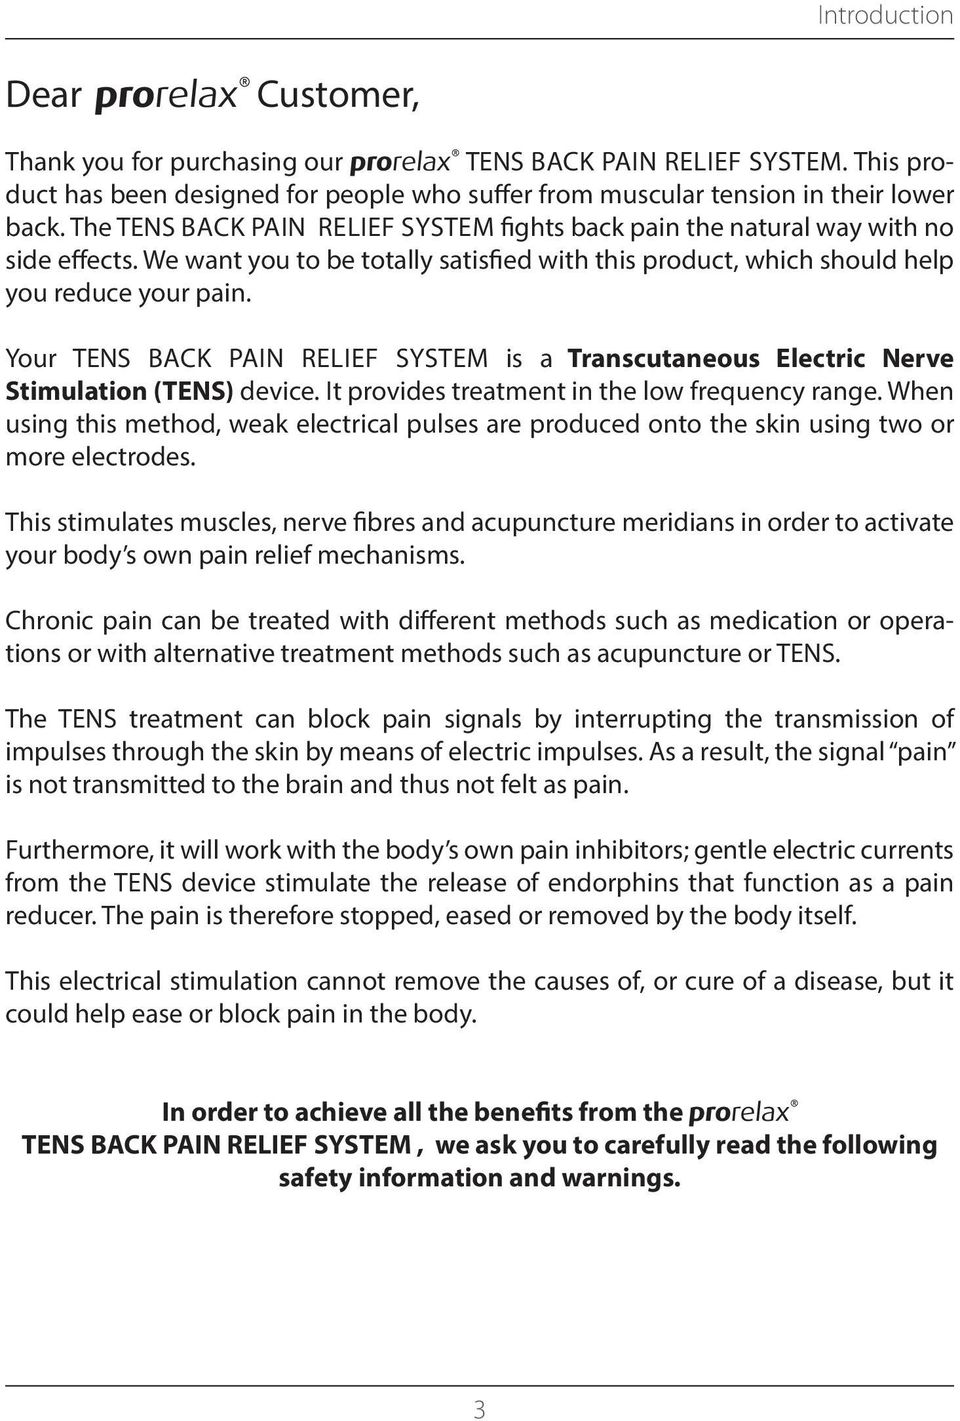 Your TENS BACK PAIN RELIEF SYSTEM is a Transcutaneous Electric Nerve Stimulation (TENS) device. It provides treatment in the low frequency range.